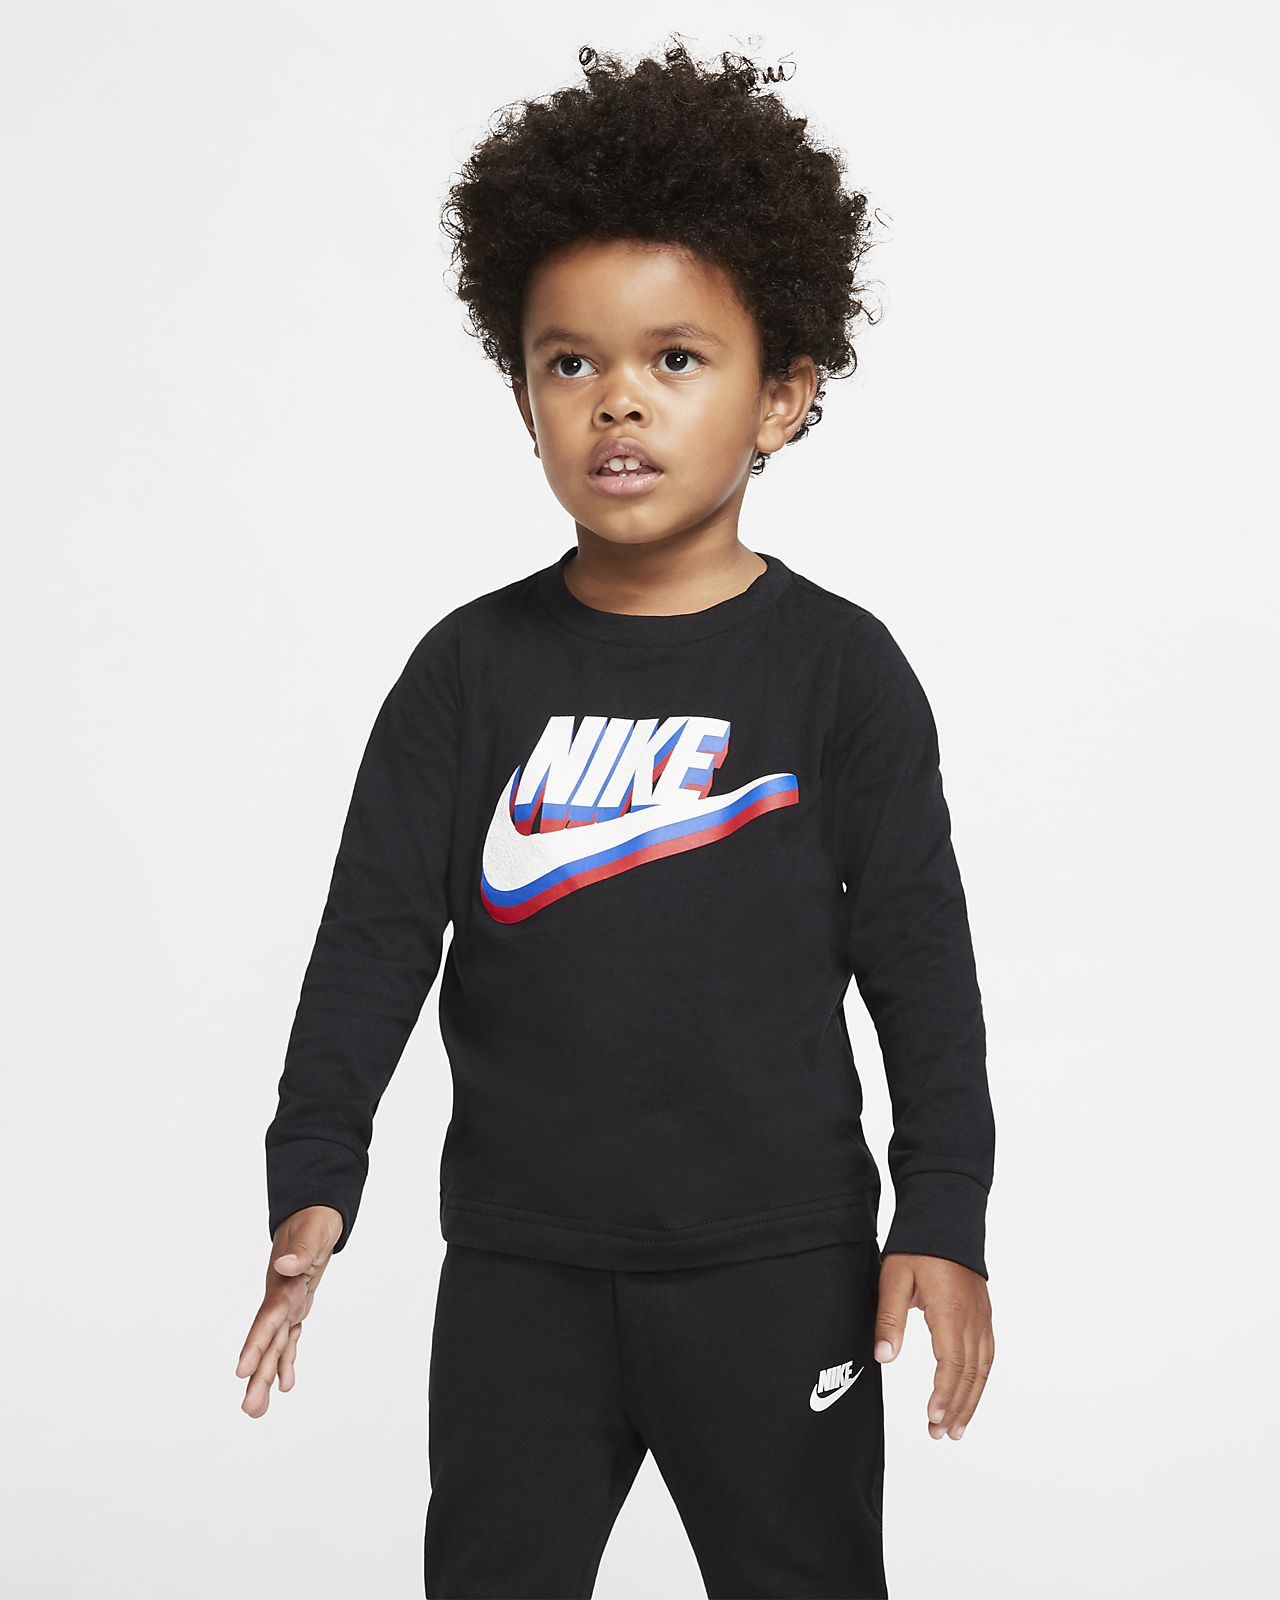 Nike Sportswear Toddler Long-Sleeve T-Shirt